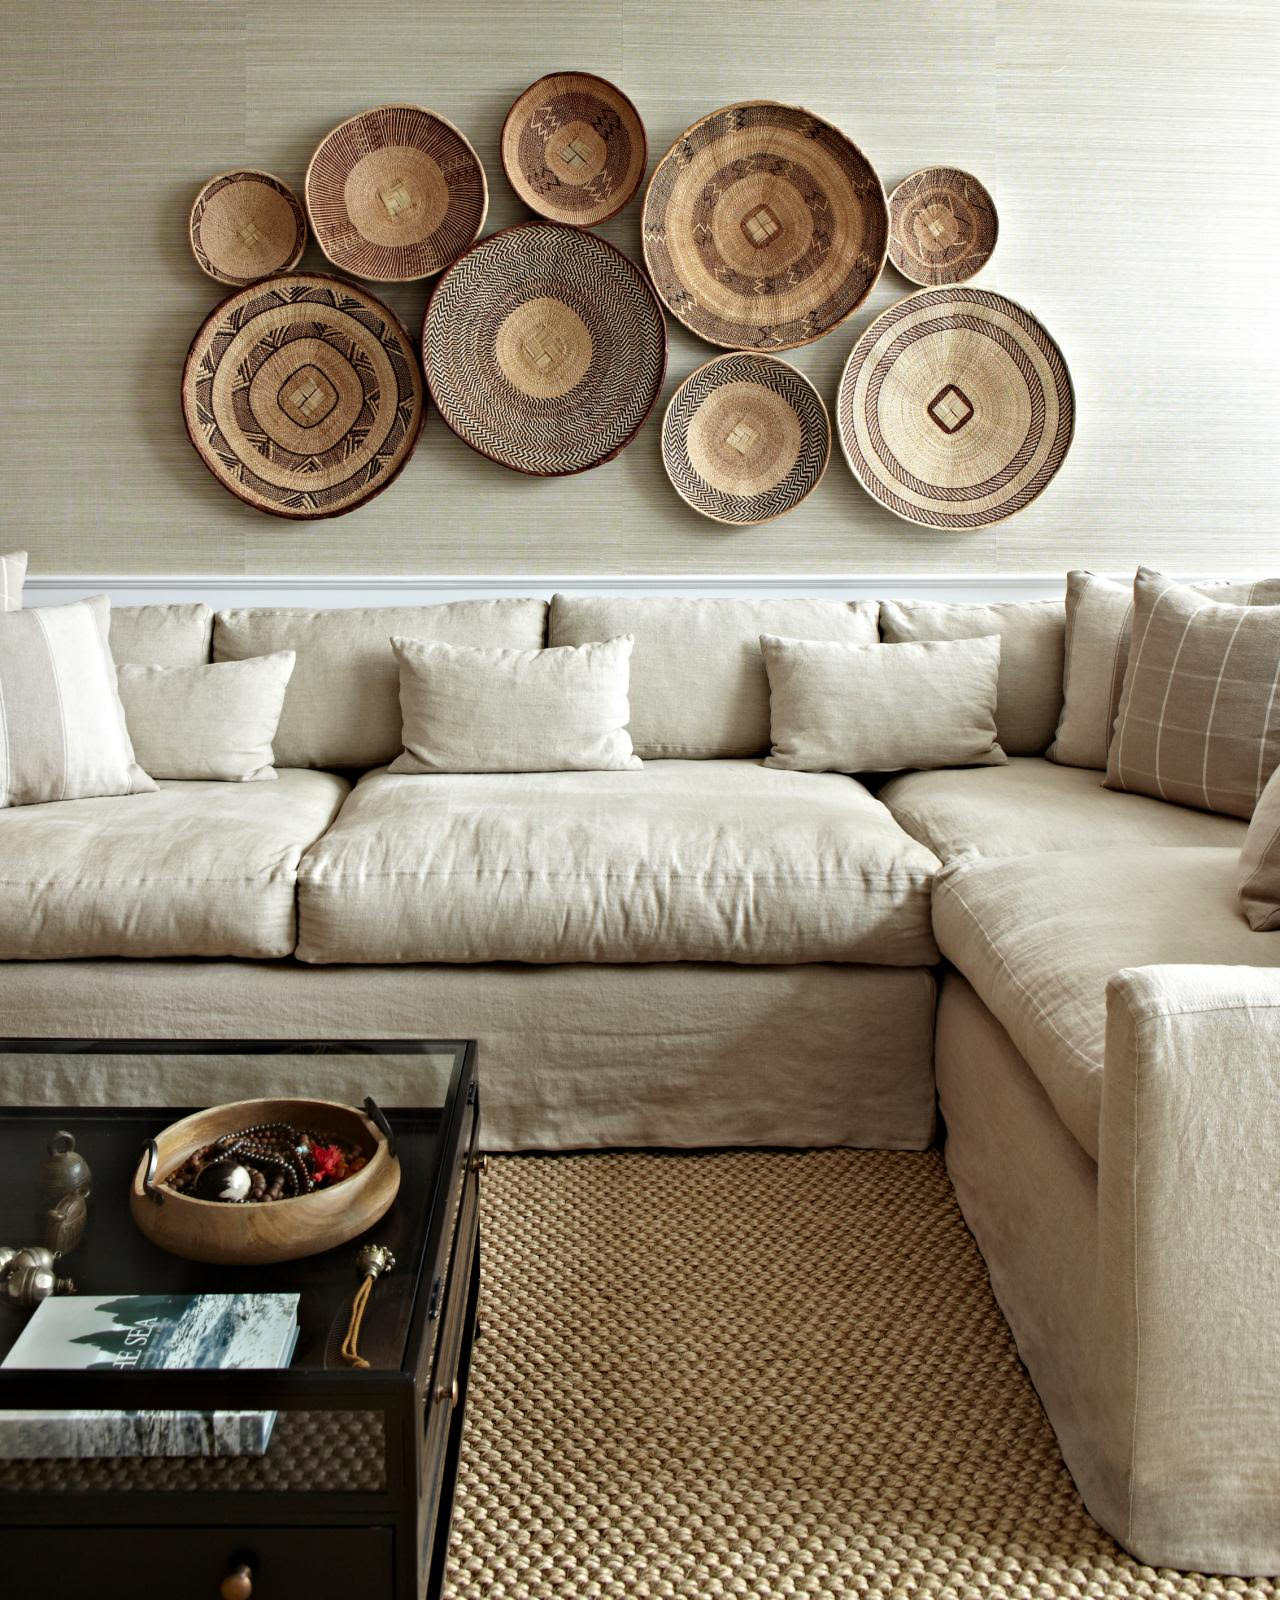 Beyond The Matte and Frame: 8 Innovative Ways to Decorate Your Walls